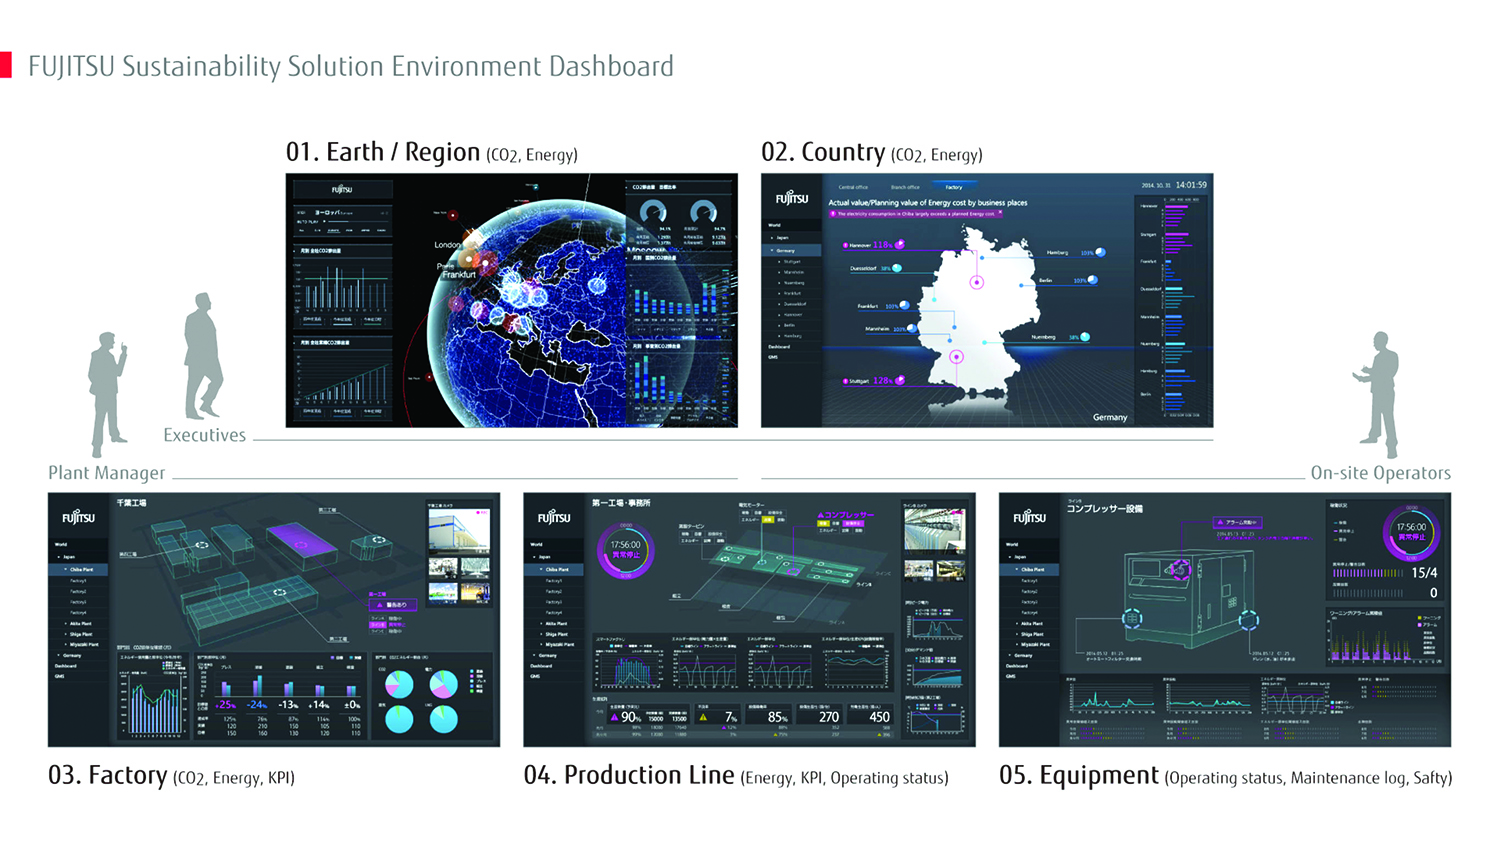 Environmental Management Dashboard